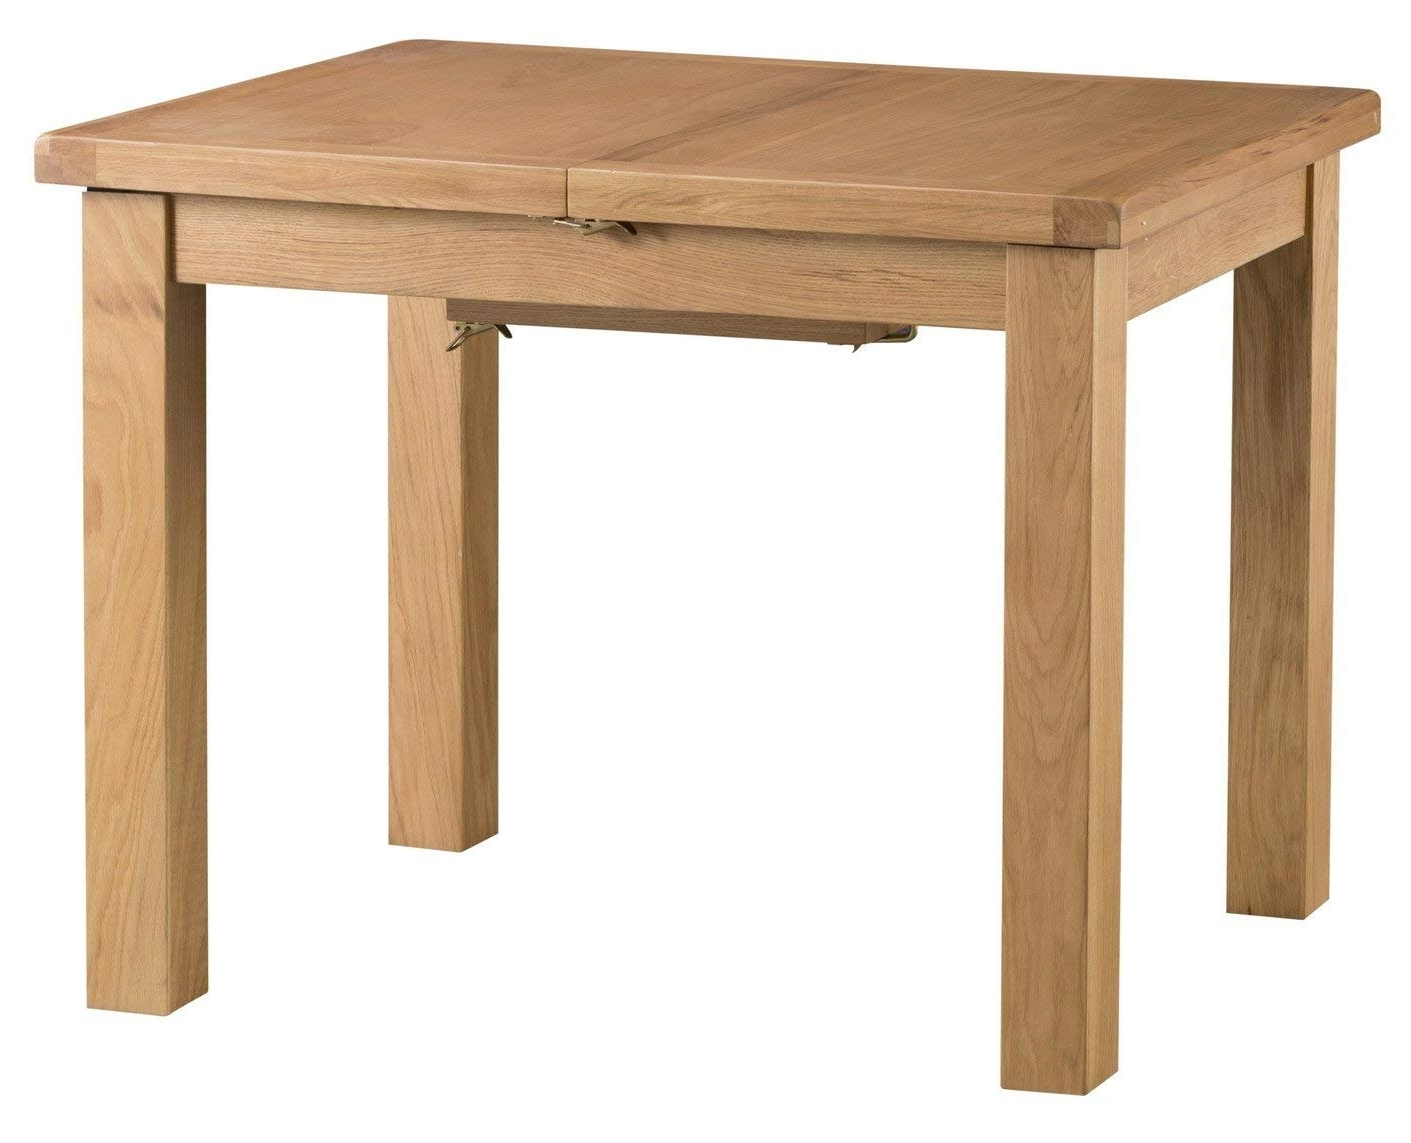 Chichester Oak Small Butterfly Extending Dining Table In Light Oak Intended For Recent Chichester Dining Tables (View 14 of 25)